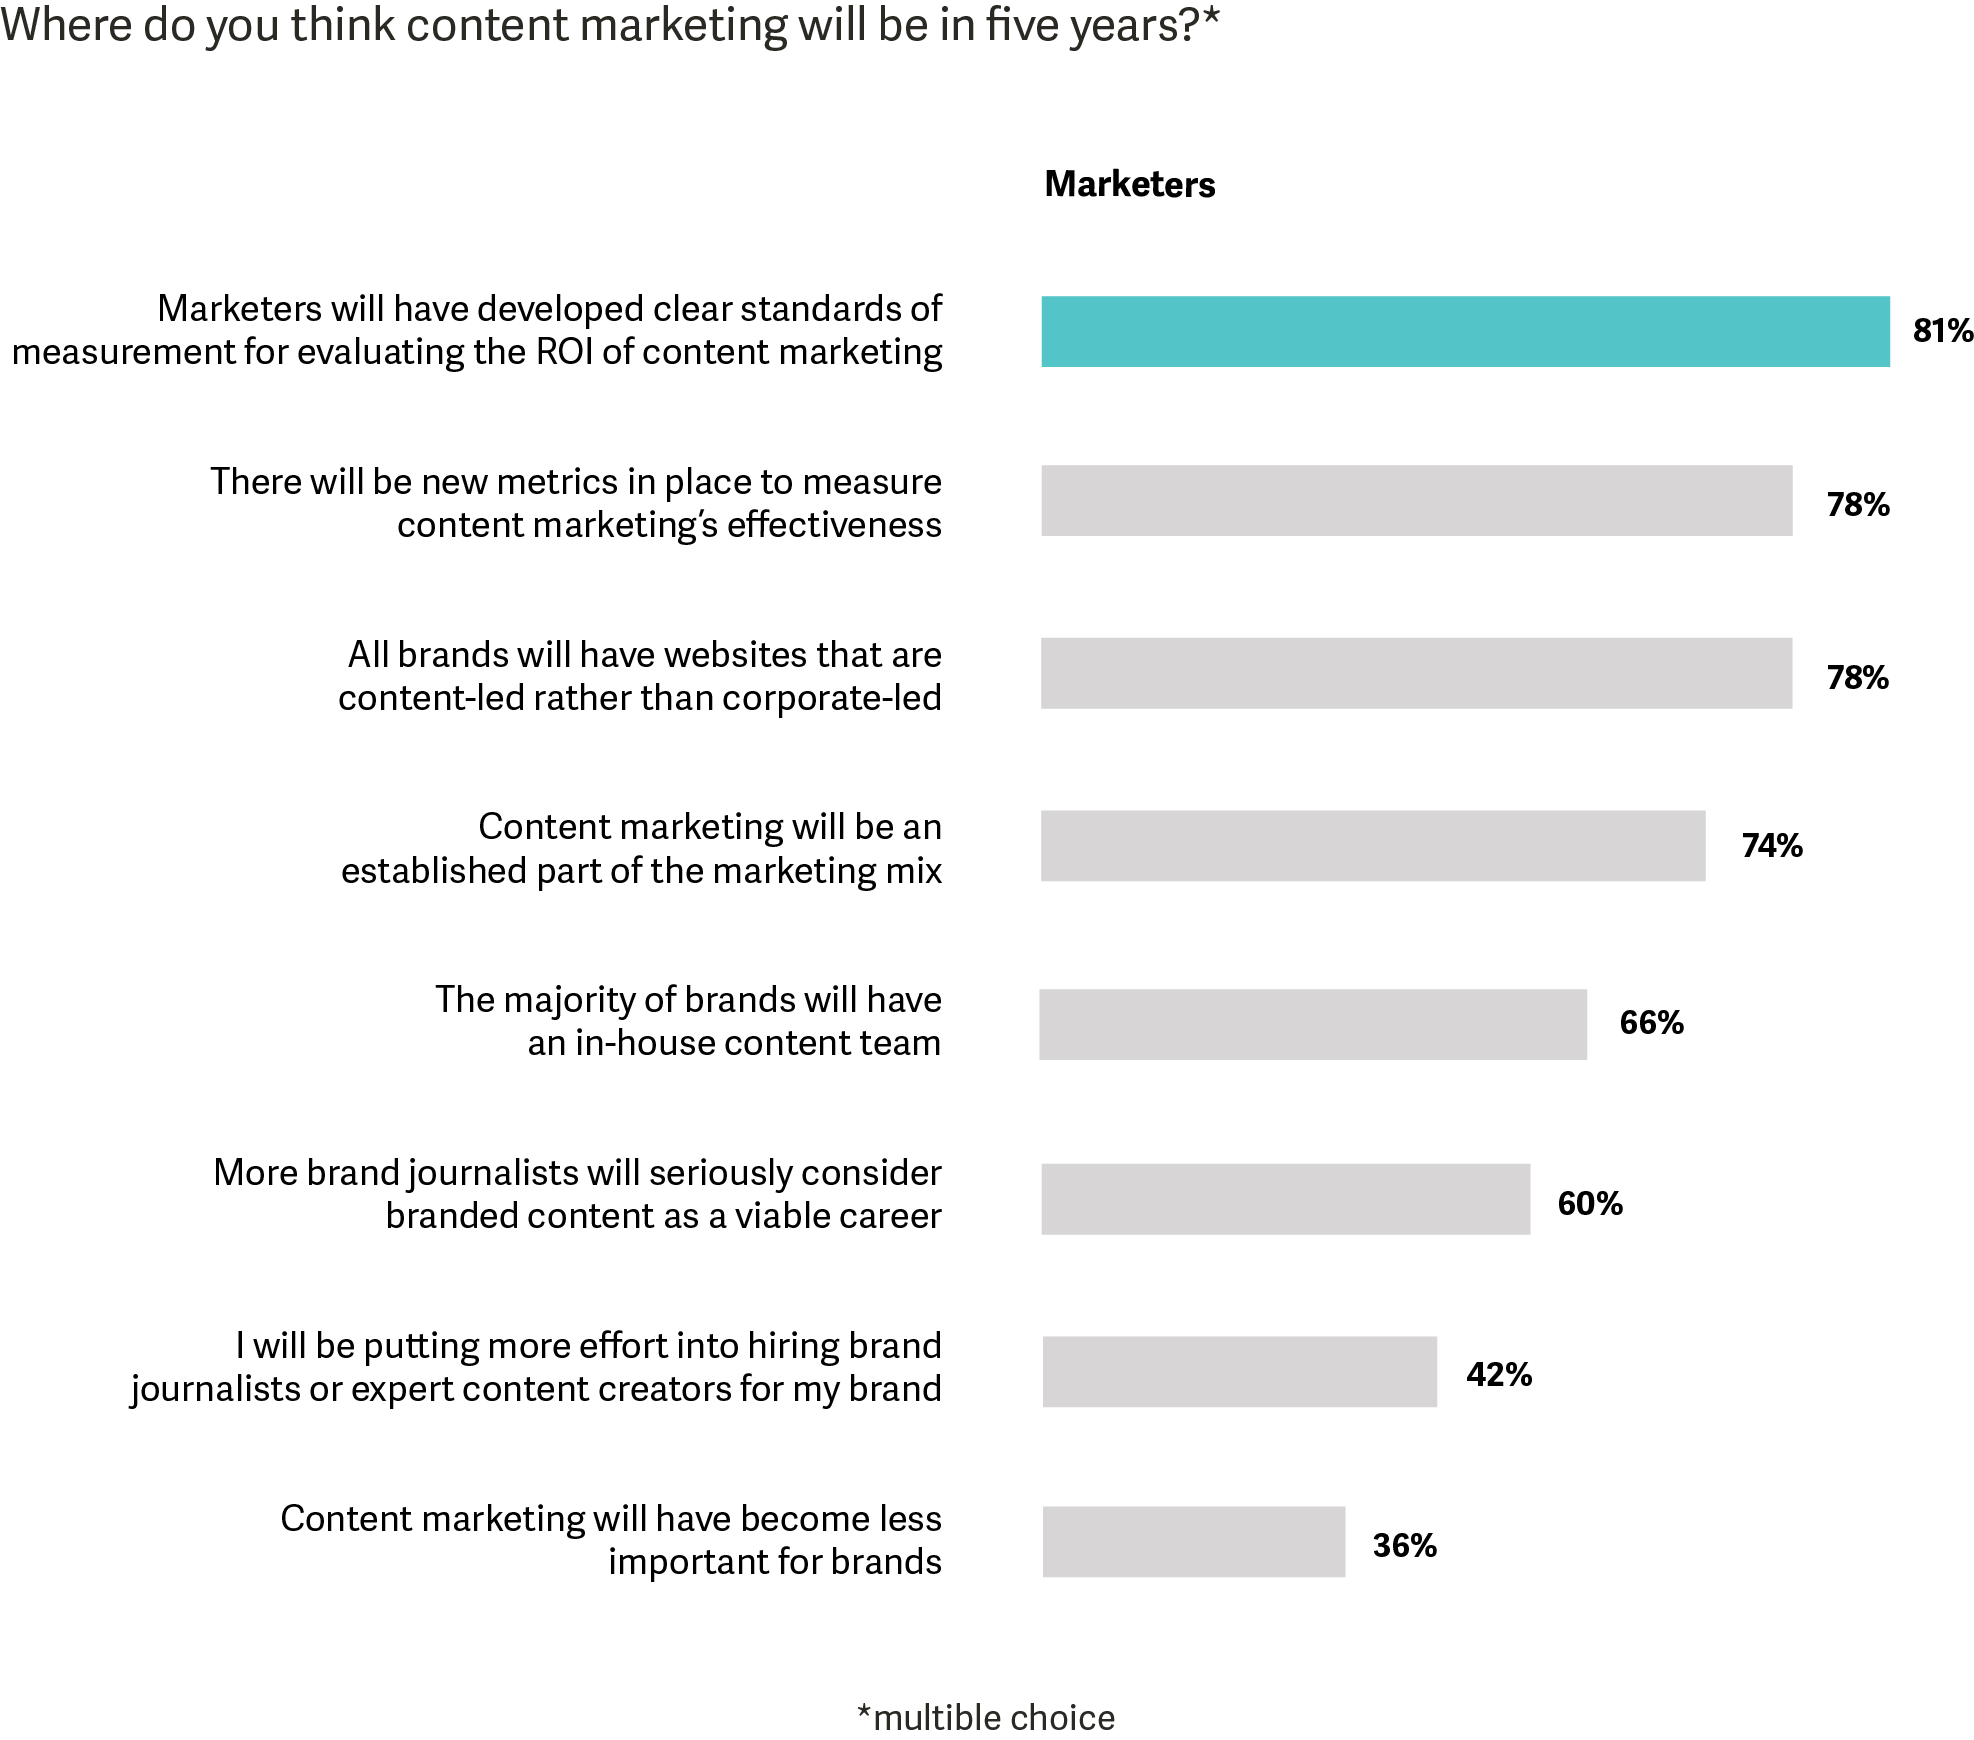 Where will content marketing be in 5 years